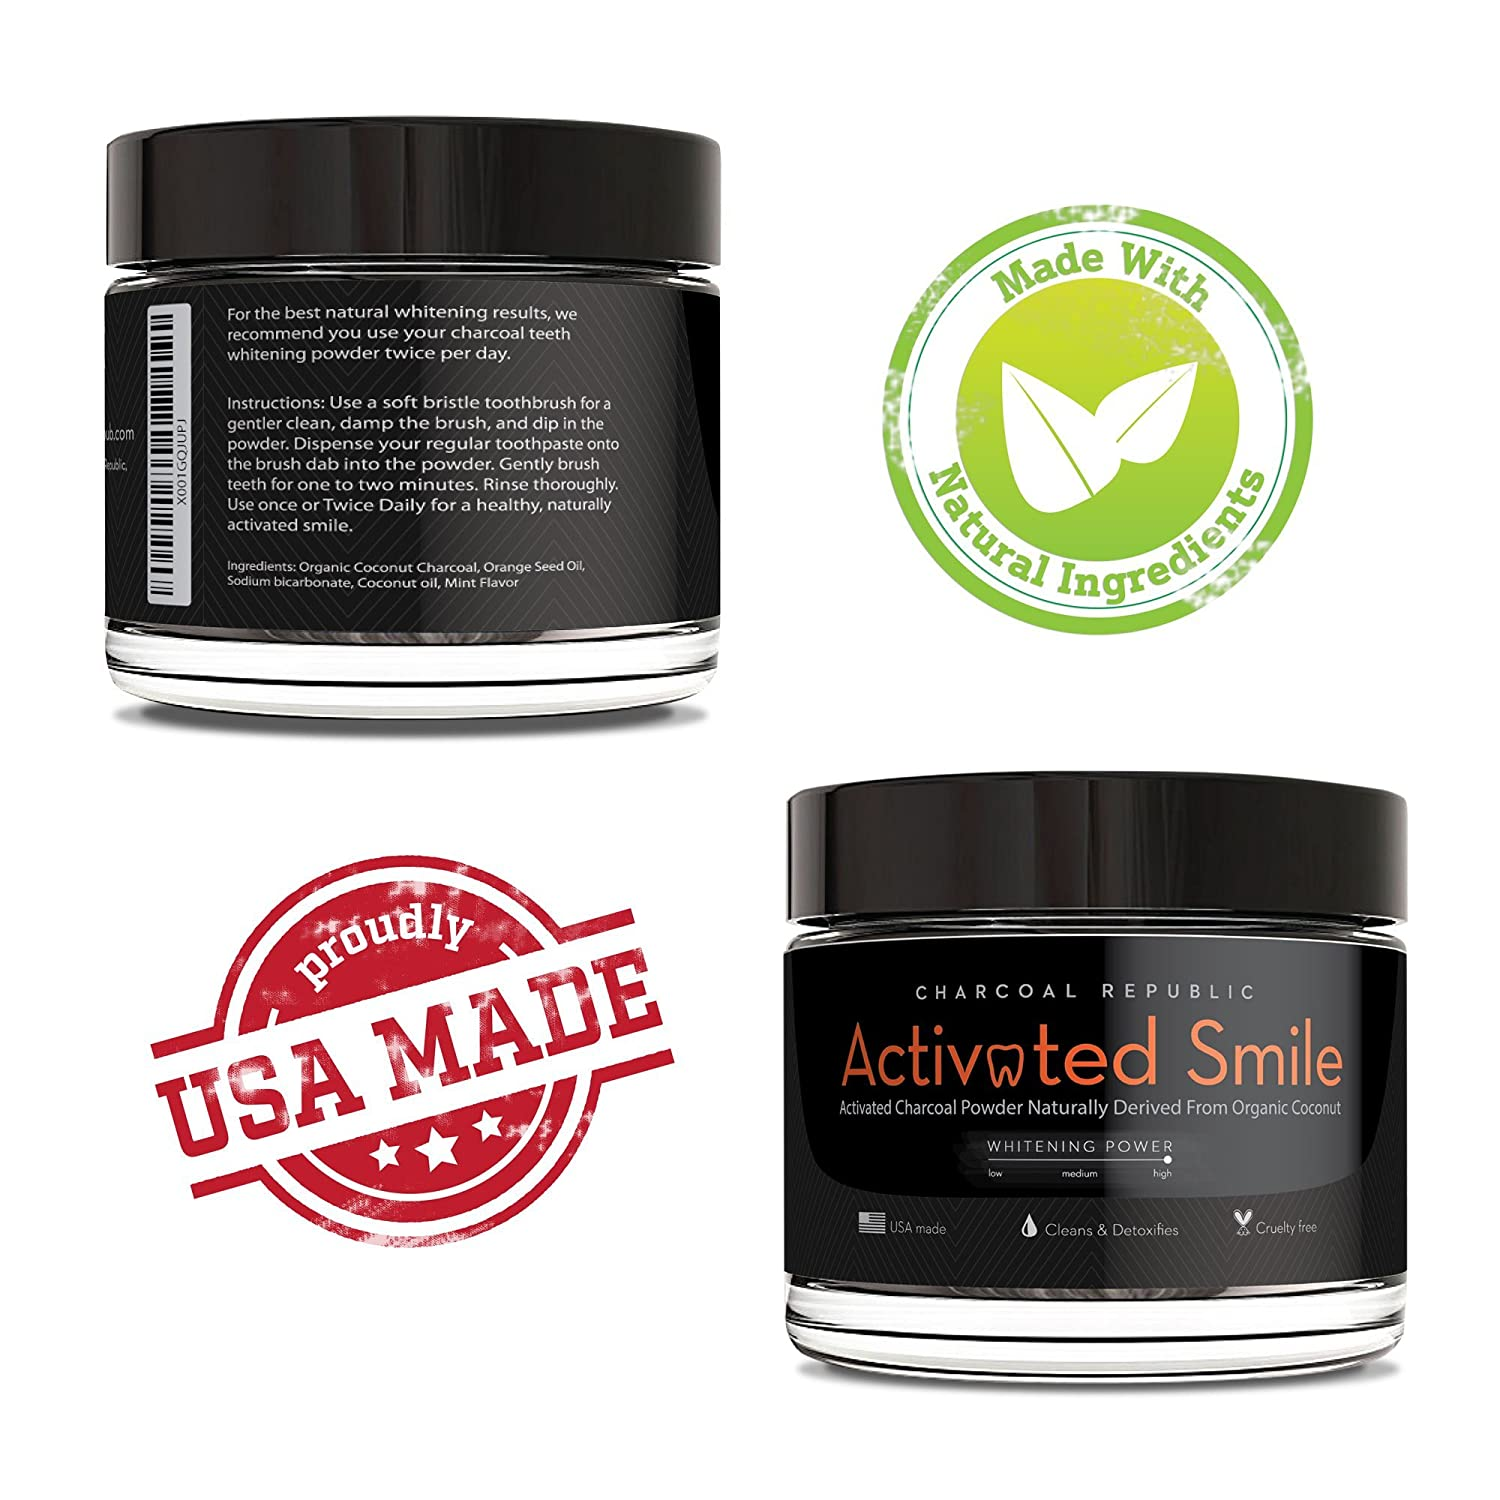 1f172b7e616a2 Amazon.com : Activated Smile Natural Teeth Whitening Charcoal Powder - Best Activated  Charcoal Teeth Whitener - Made in USA - Perfect for Healthier, ...